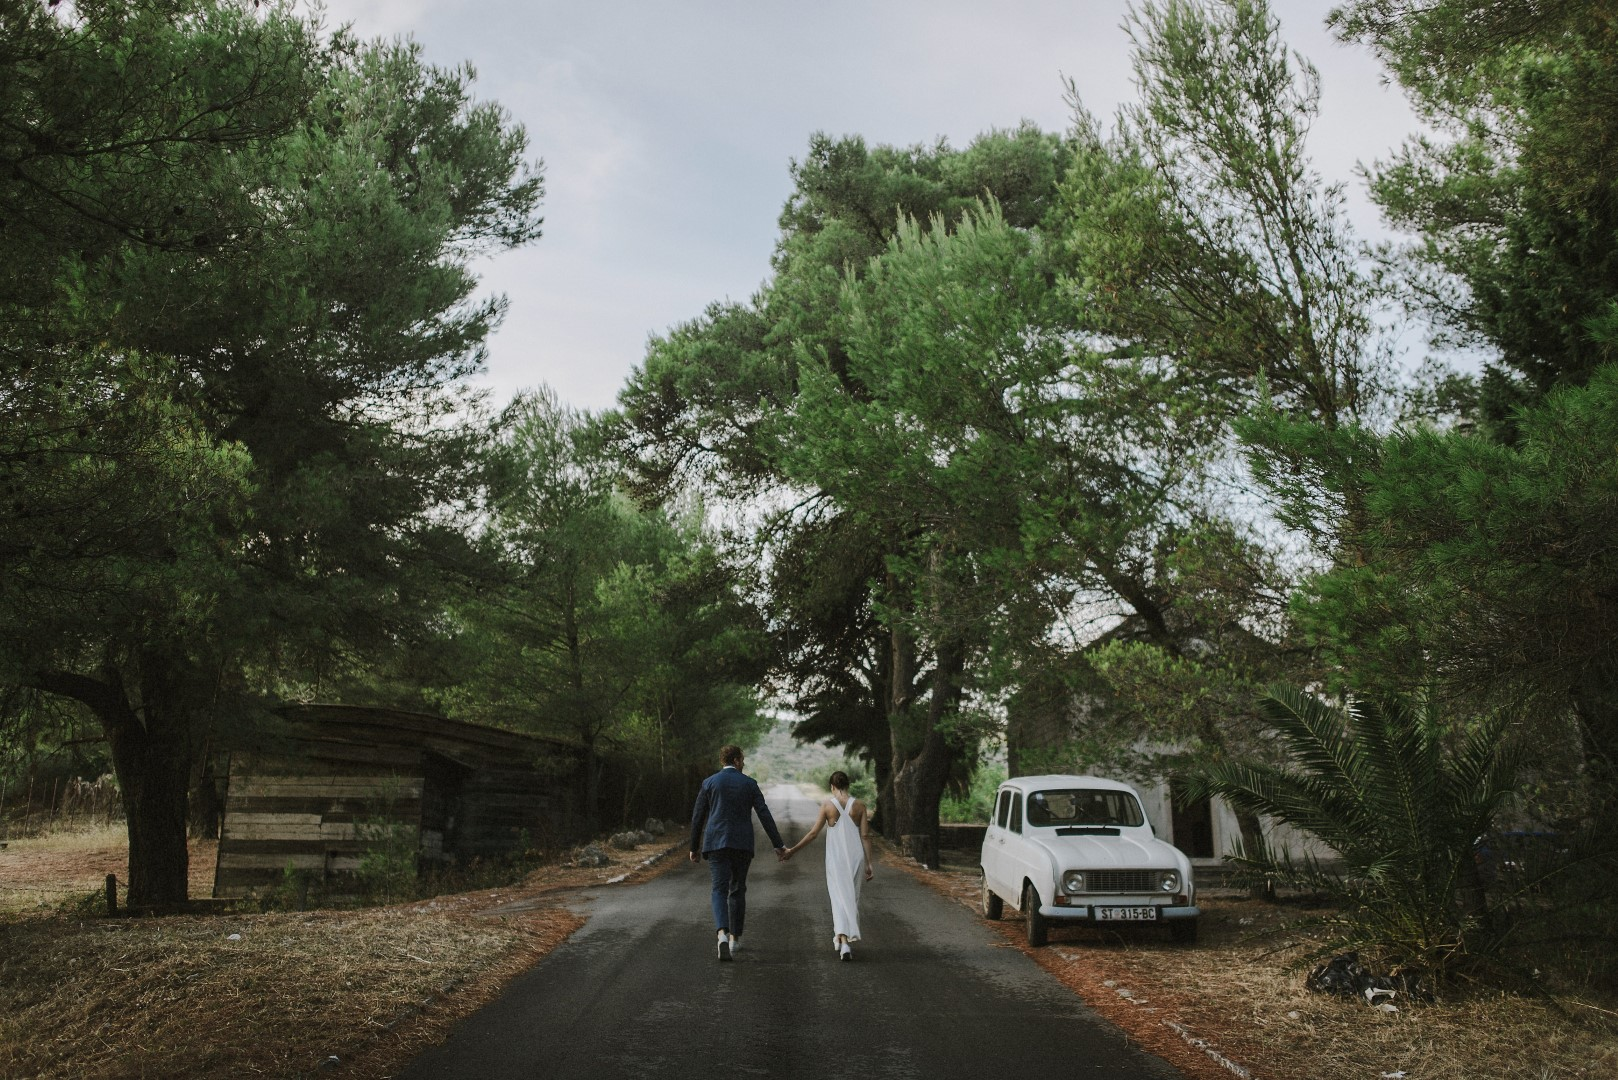 A photo of the happy couple from their photosession with Marko Marinkovic. We can see them from behind as they are holding hands. They are on an empty road, a white old fashioned car next to them and beautiful trees all around.